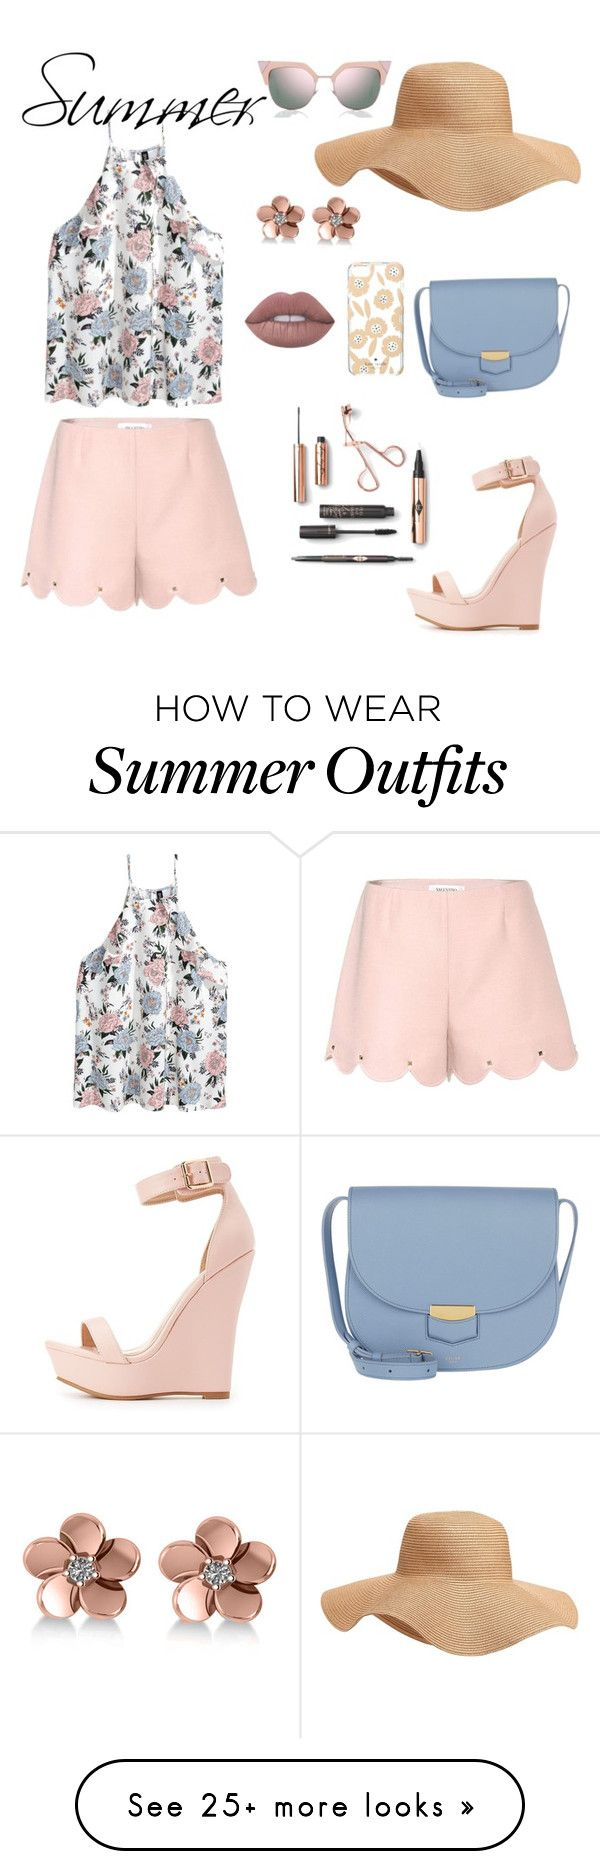 """Summer outfit"" by gretusska on Polyvore featuring Valentino, Charlotte Russe, CÉLINE, Fendi, Kate Spade, Old Navy and Allurez"